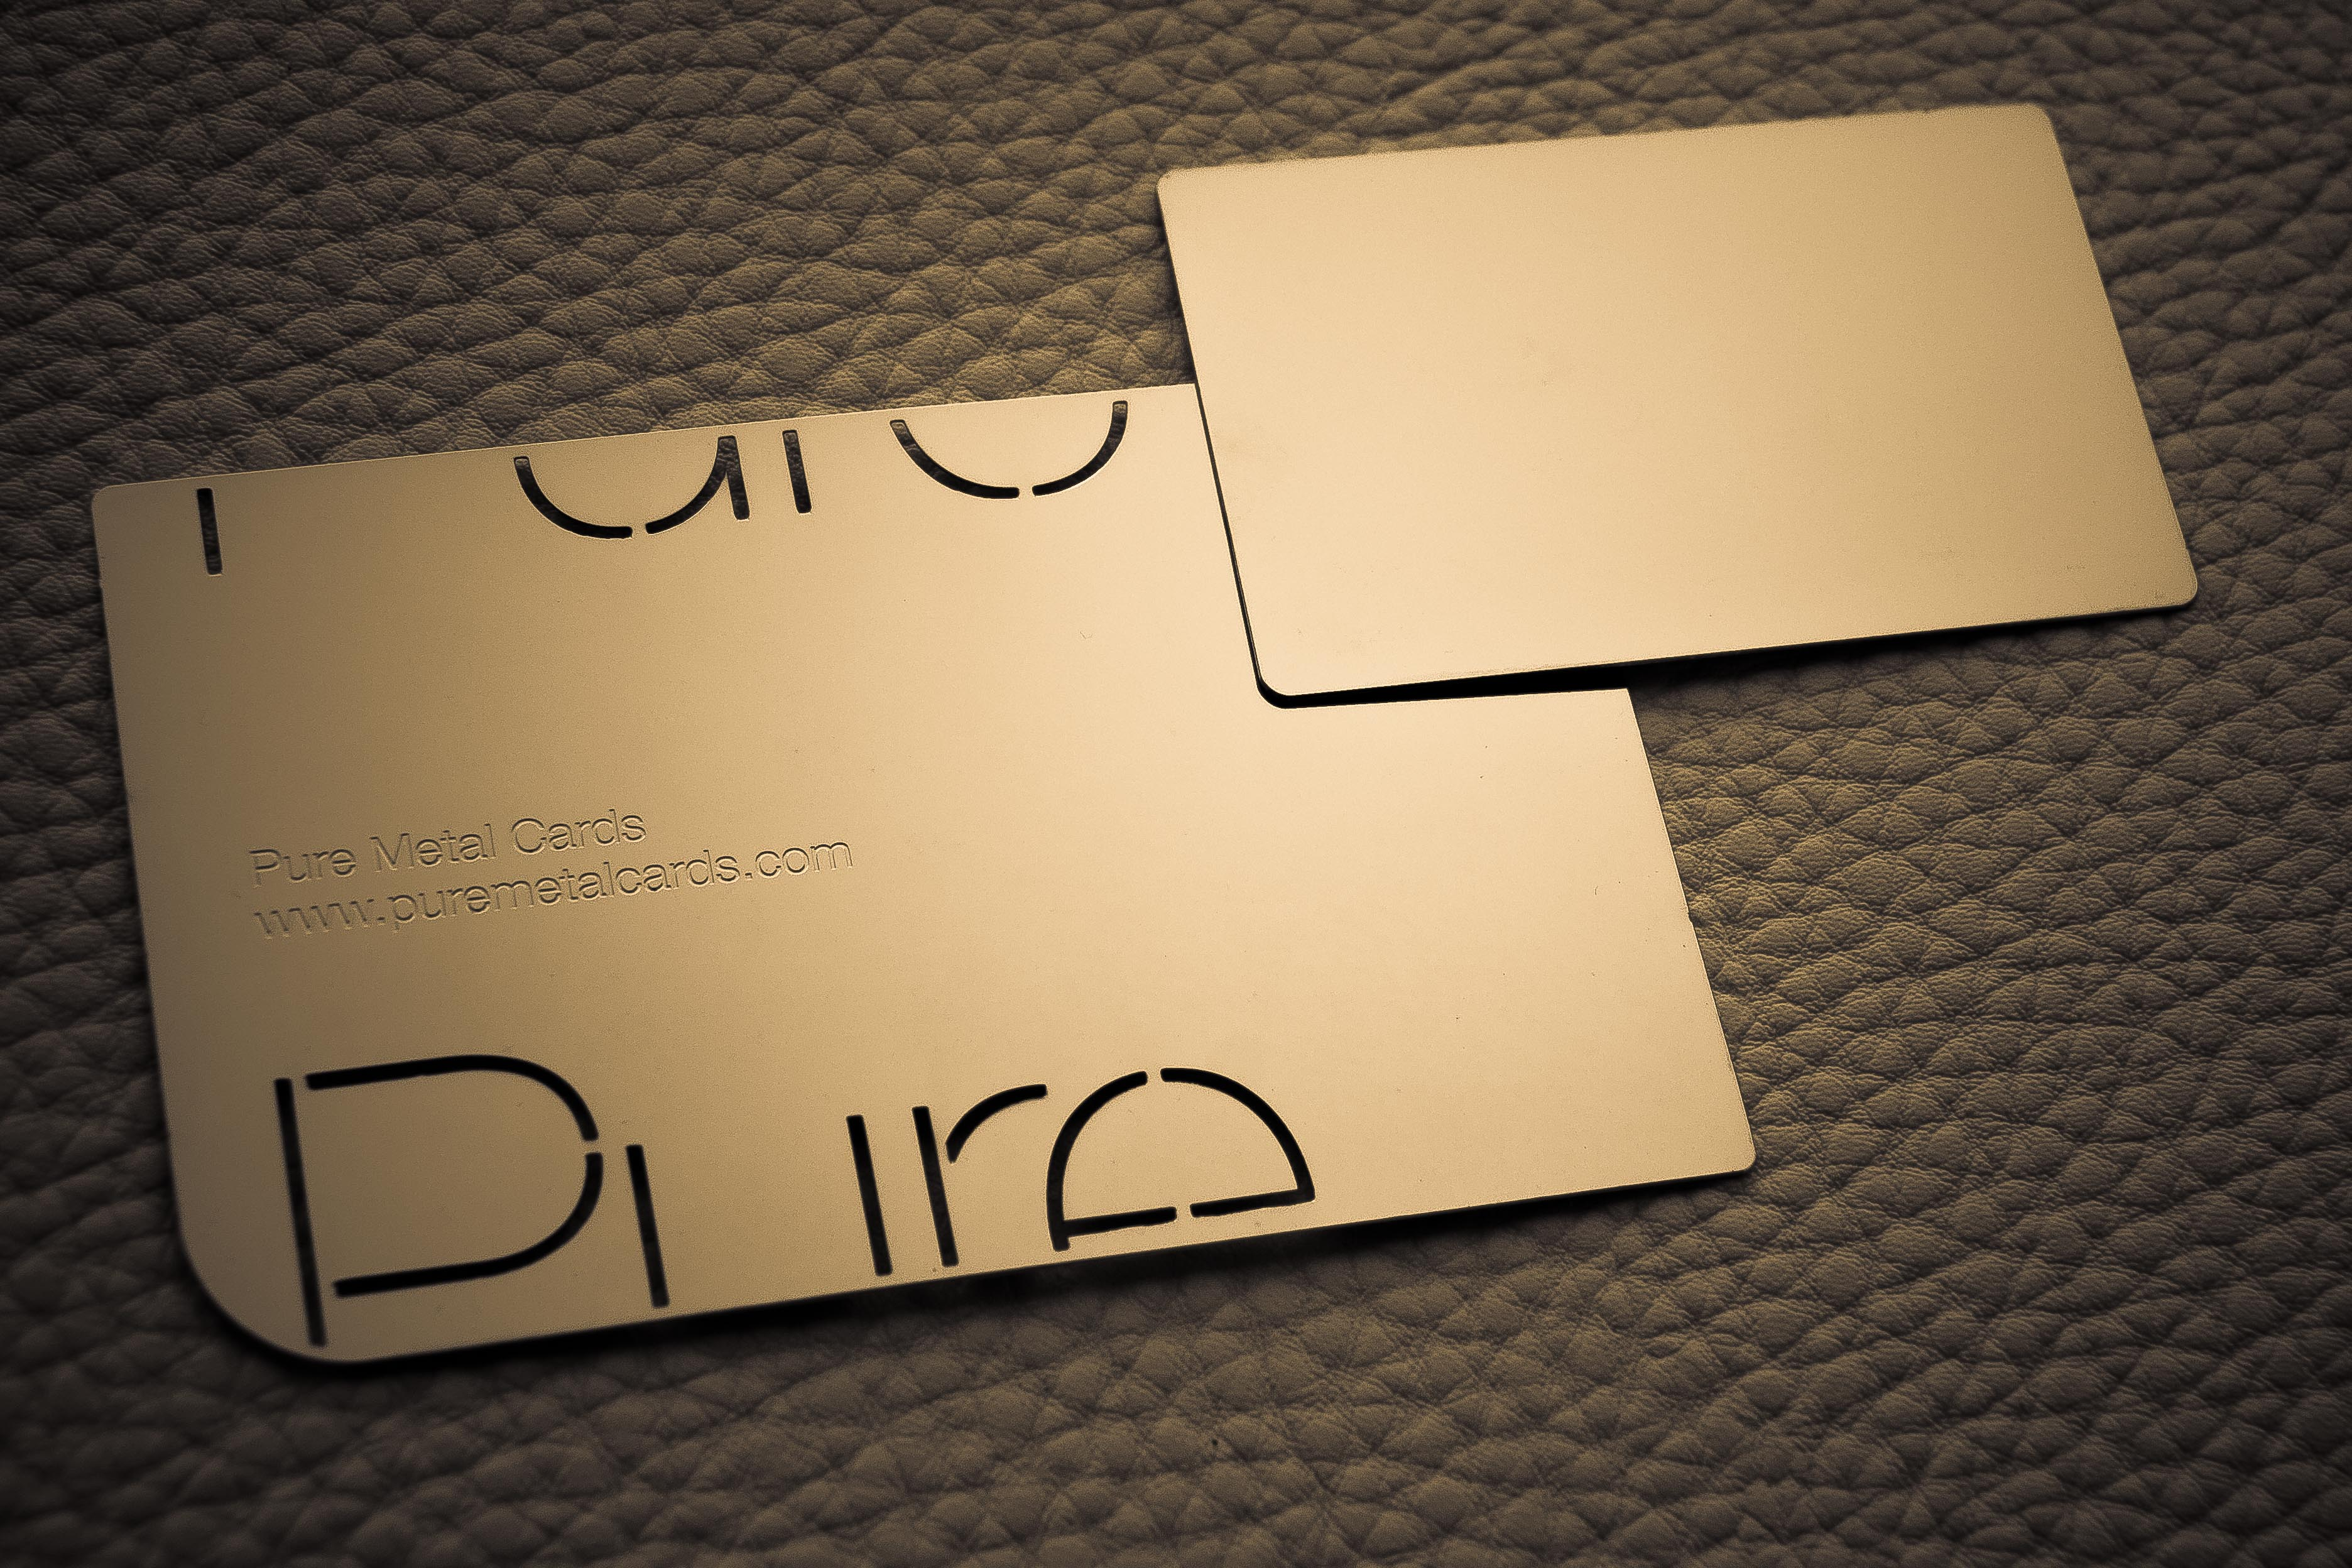 Does Size Matter in Business Card Design?